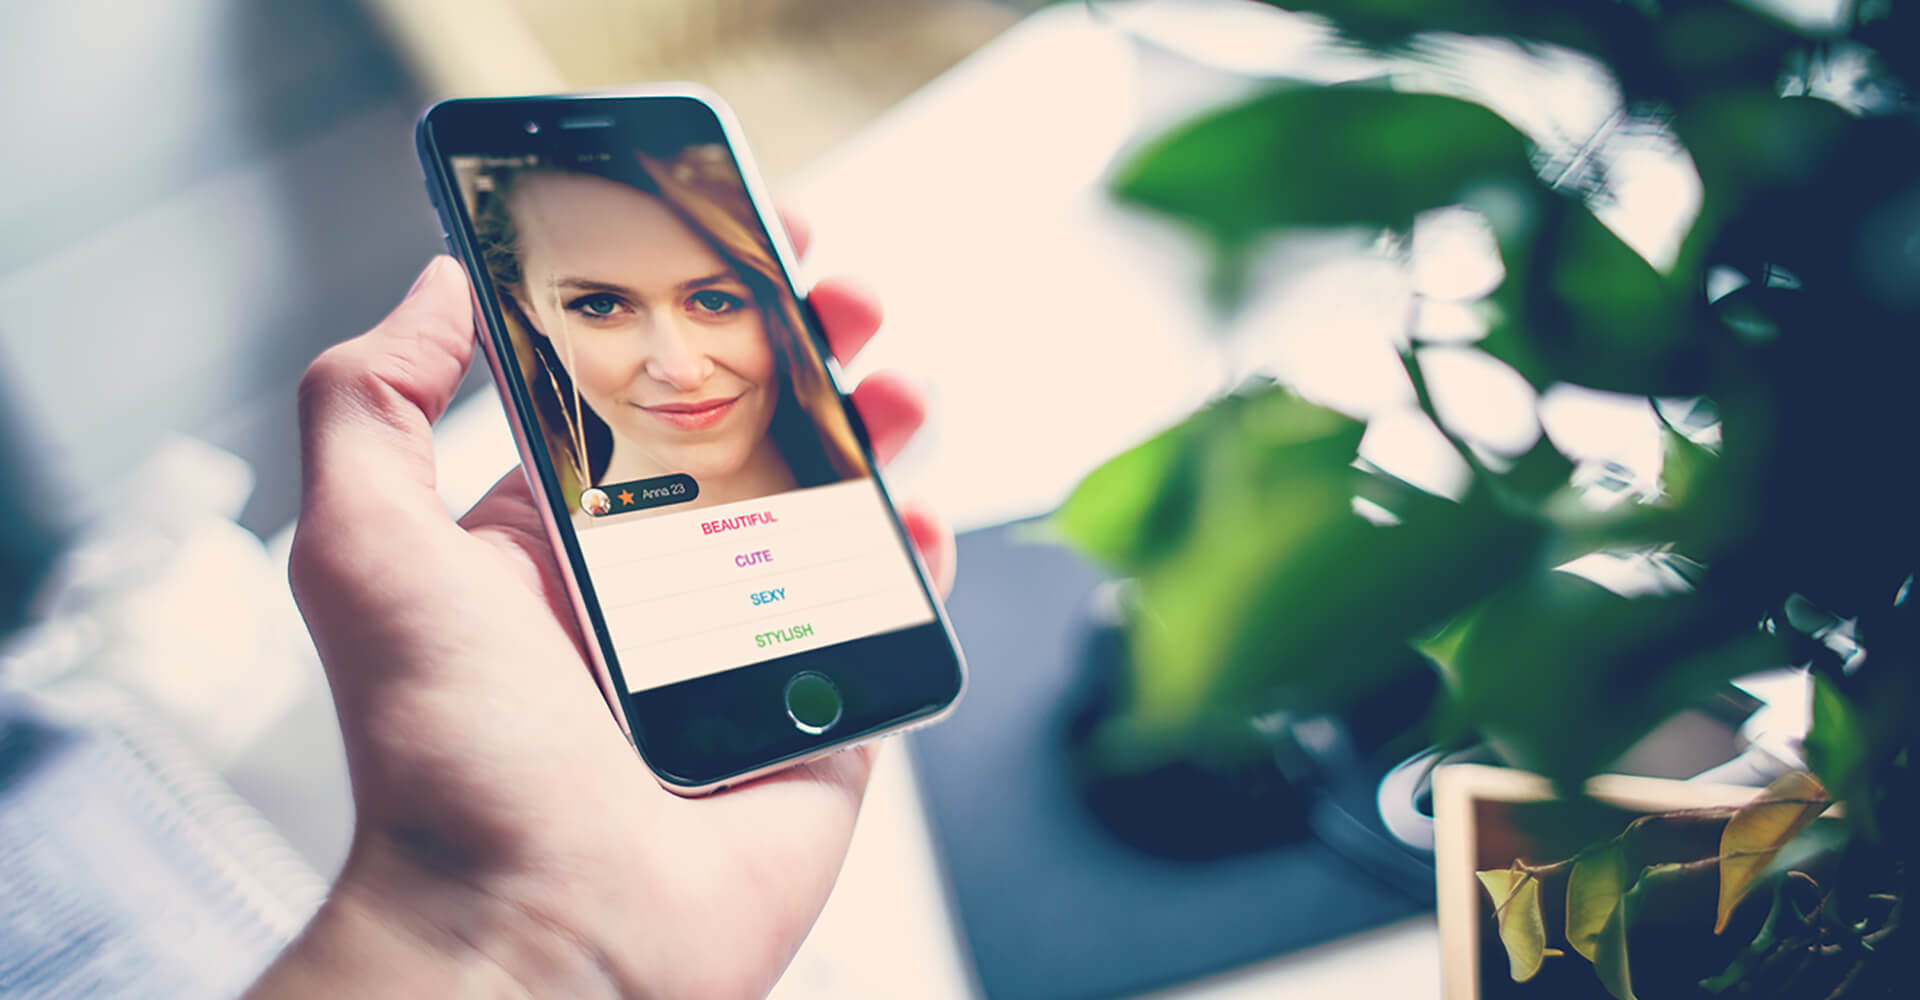 Works - Selfision Mobile Application